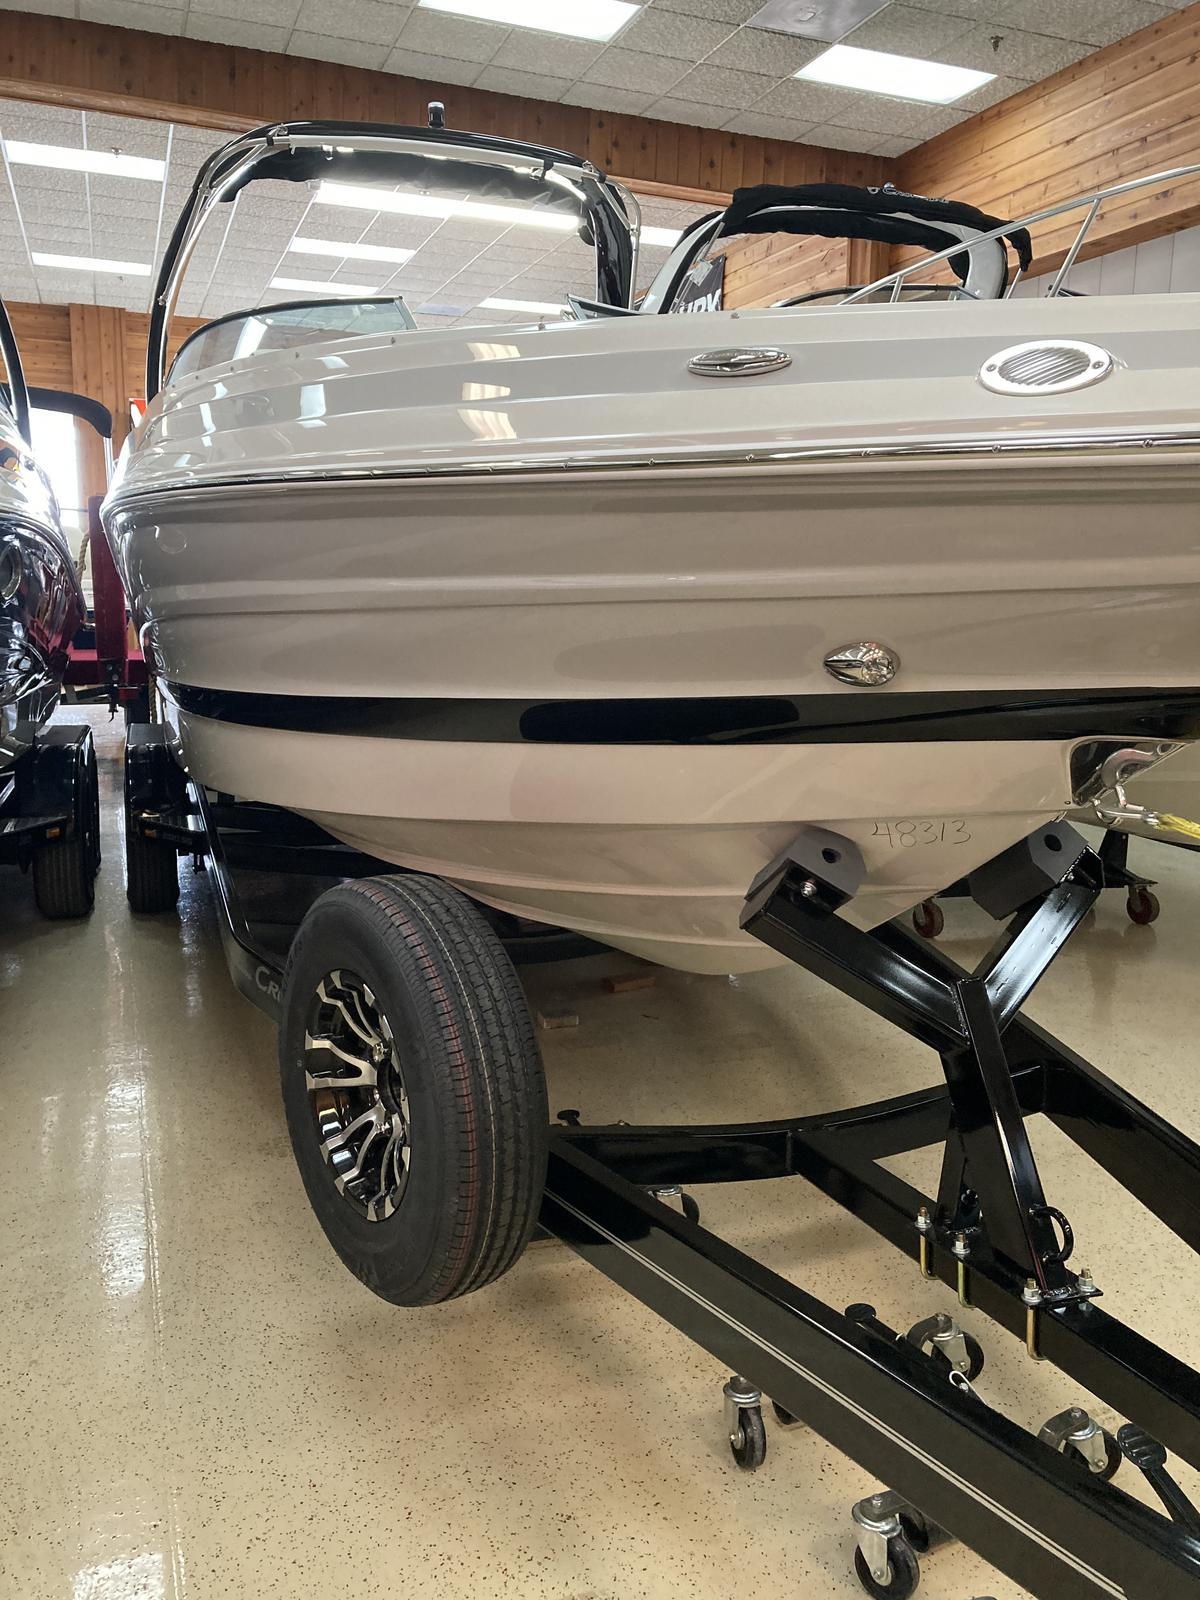 2021 Crownline boat for sale, model of the boat is 290 SS & Image # 1 of 7